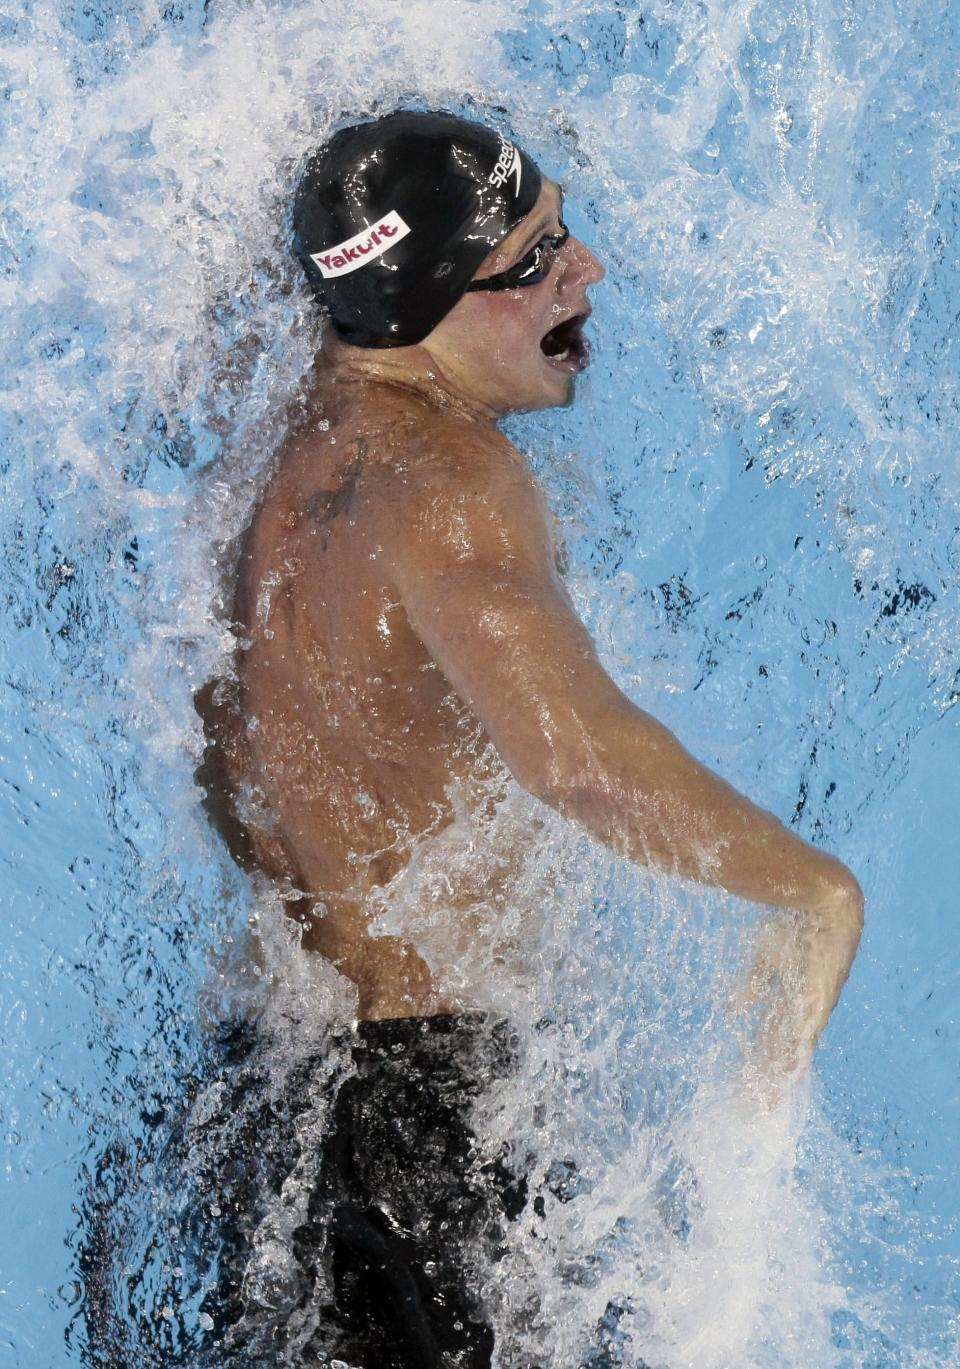 Ryan Lochte, of the United States, swims in the men's 200-meters Freestyle semifinal at the FINA 2011 Swimming World Championships in Shanghai, Monday, July 25, 2011. (AP Photo/Gero Breloer)